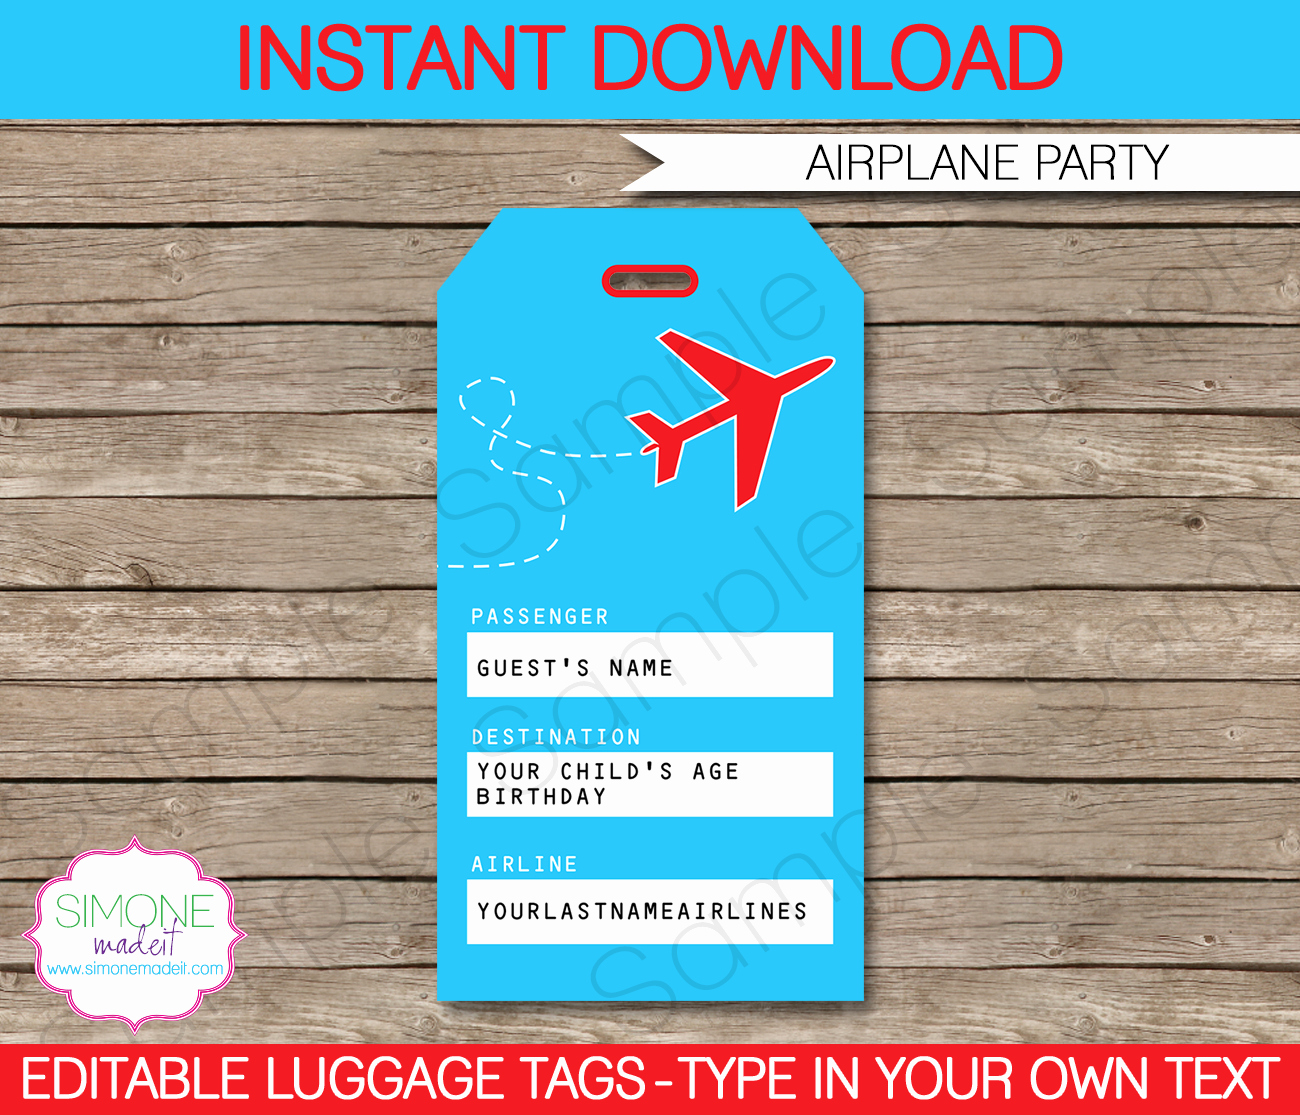 Luggage Name Tag Template Luxury Airplane Party Printables Invitations & Decorations